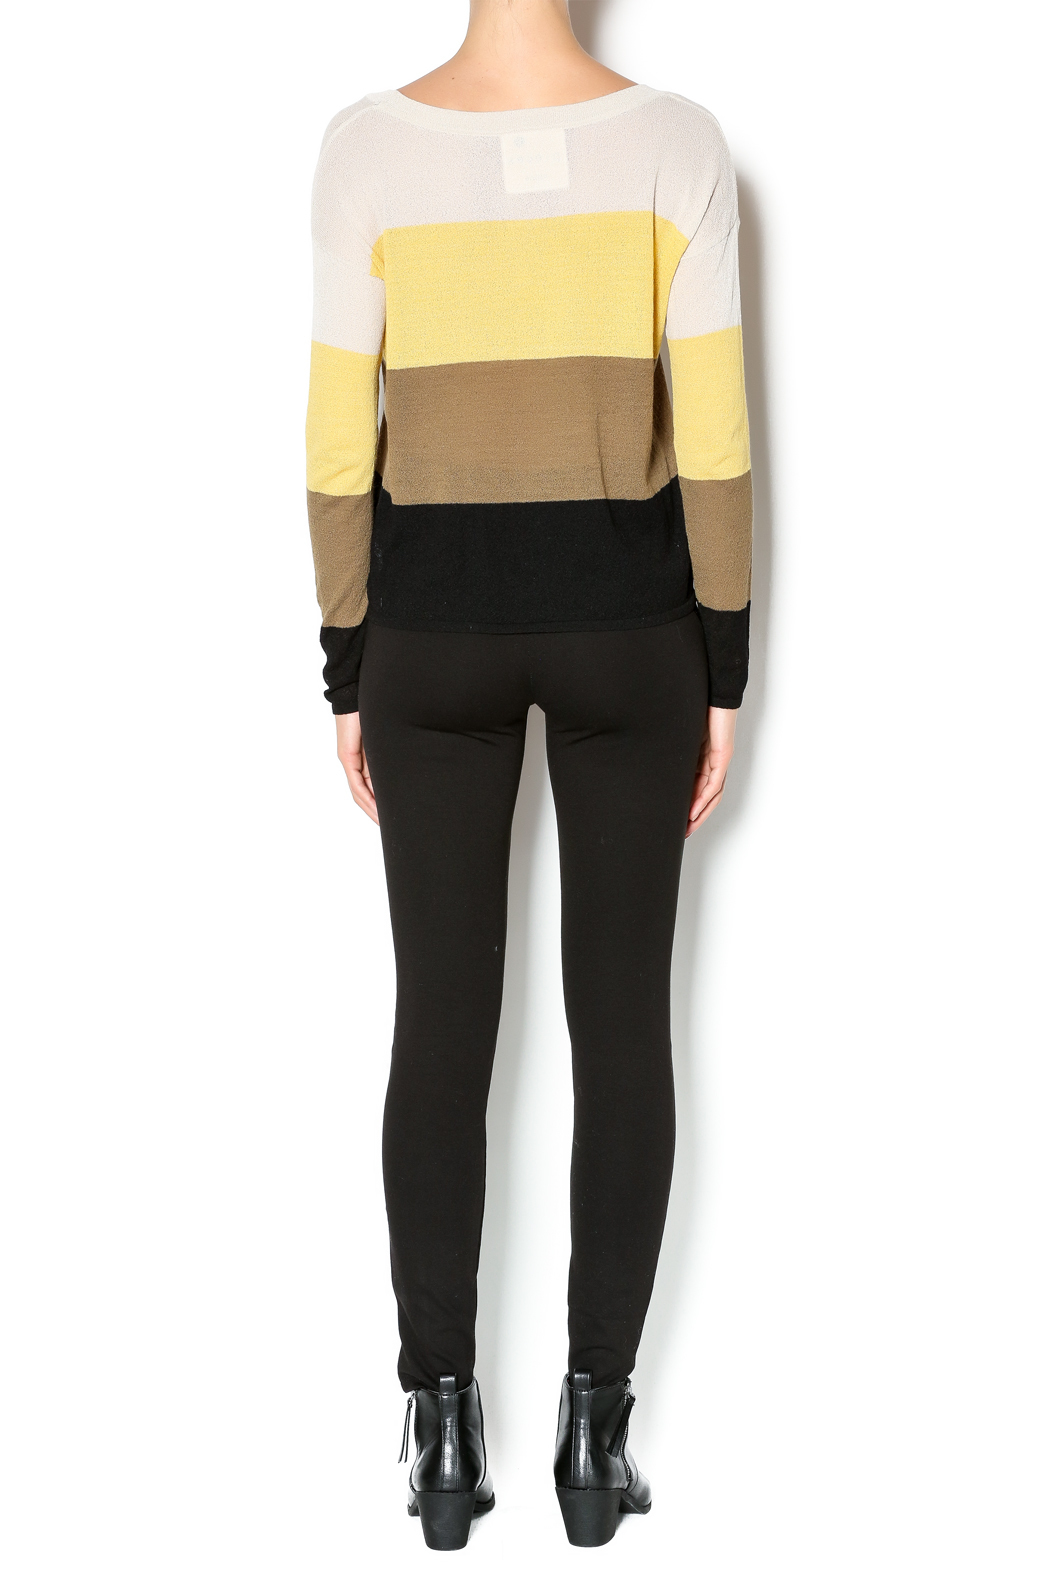 Kensie Striped Lightweight Sweater - Side Cropped Image